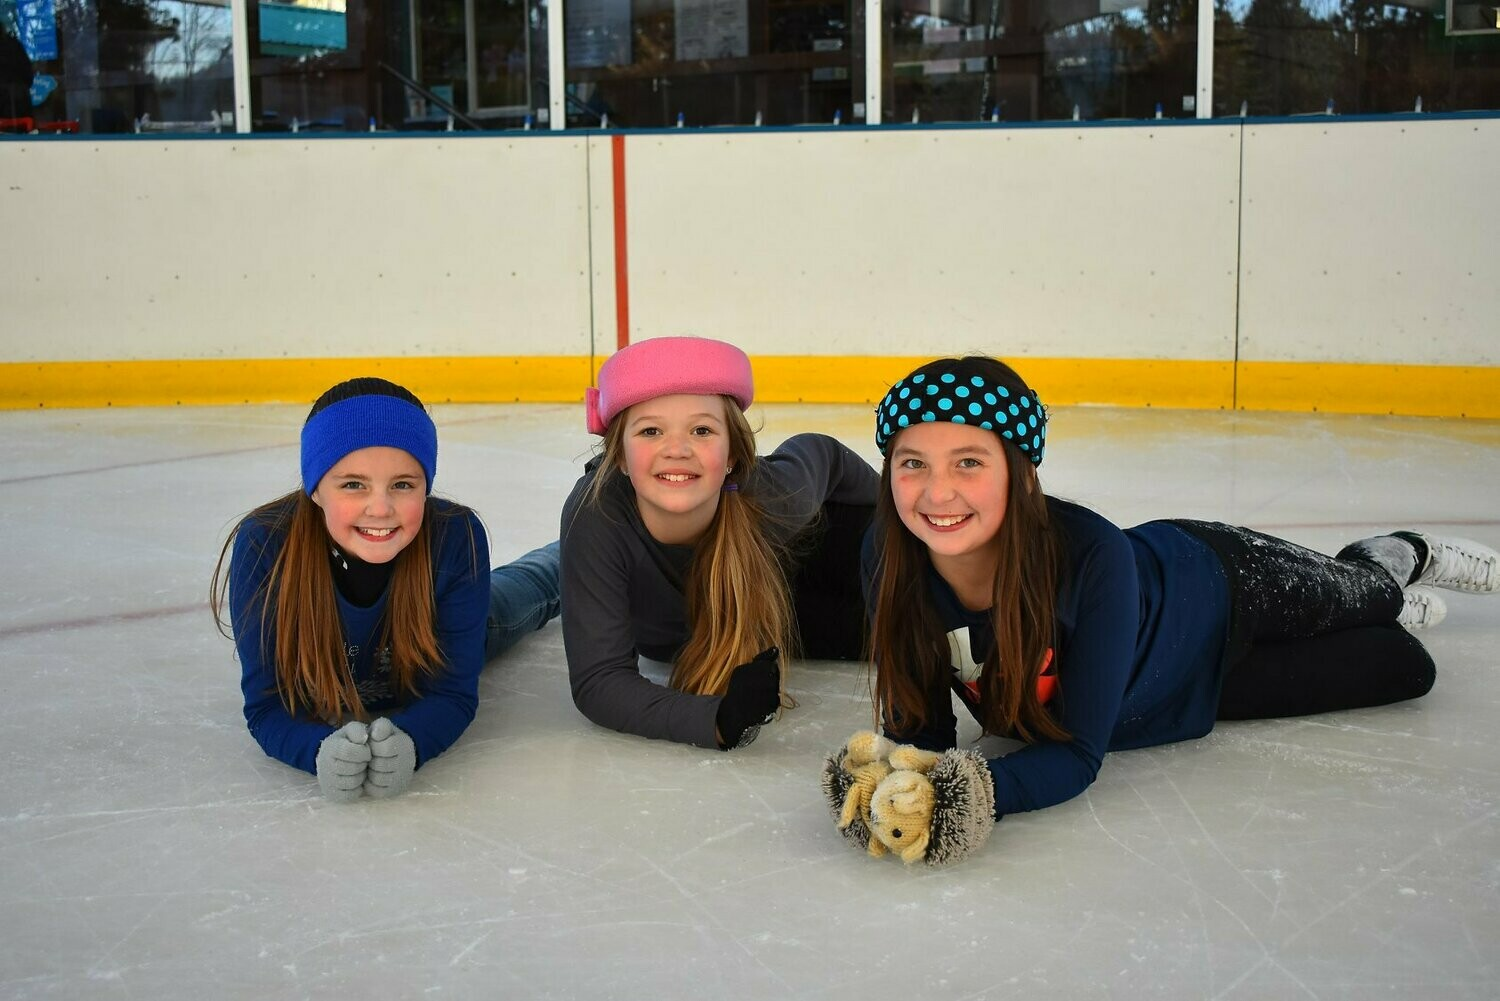 February 23 4:15-5:15pm After School Skate